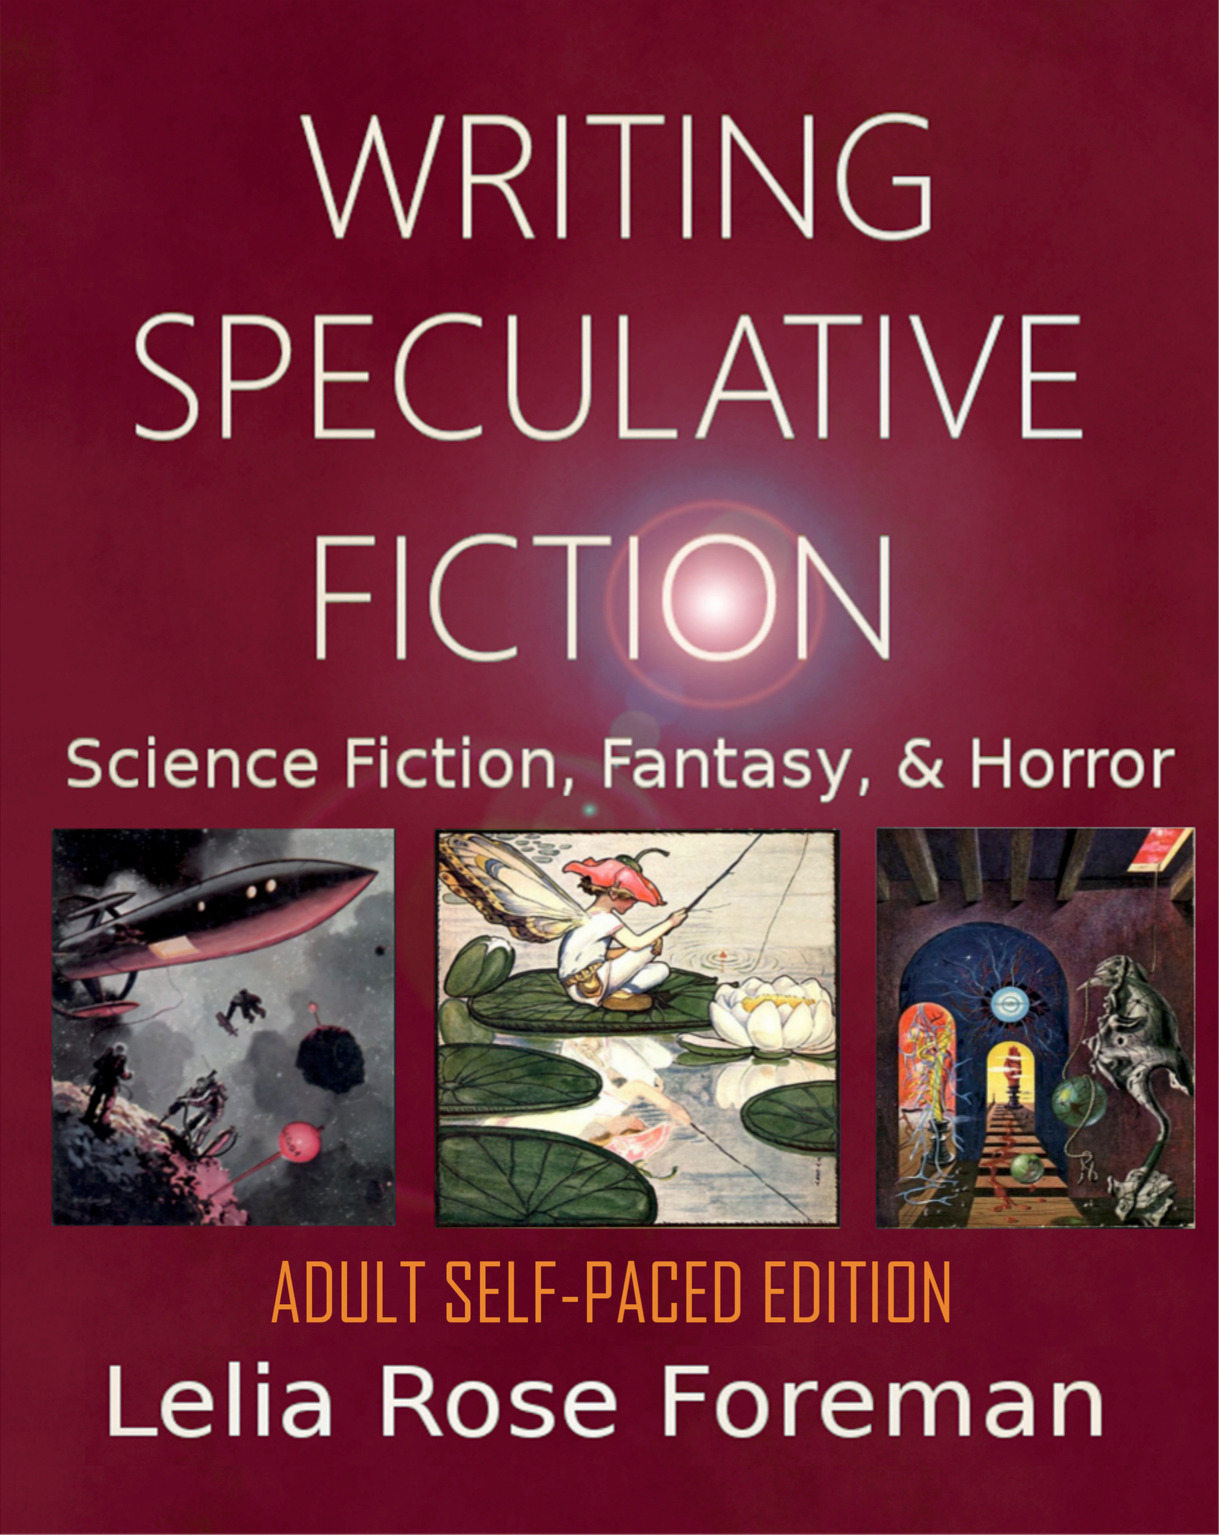 Writing Speculative Fiction | Adult Self-Paced Edition